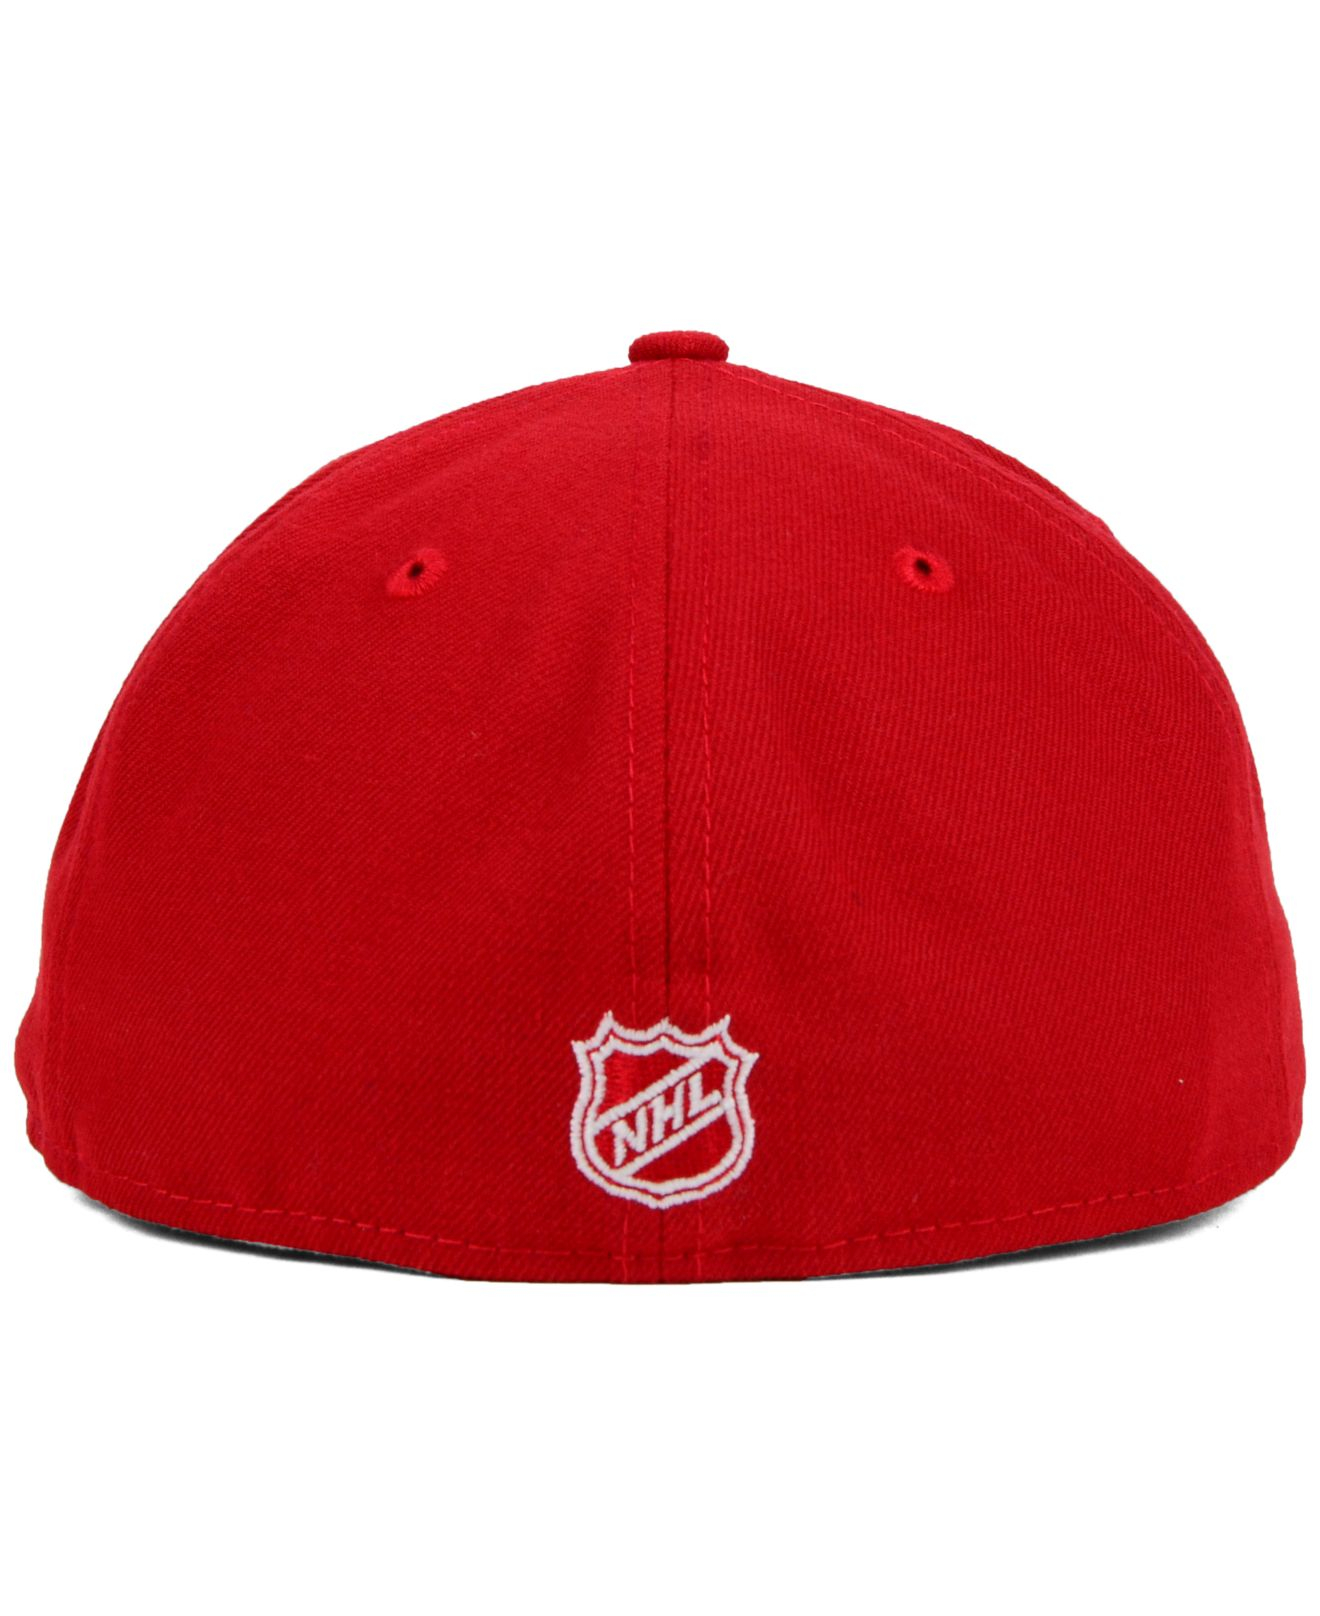 pretty nice 25e57 91eb6 KTZ Tampa Bay Lightning C-dub 59fifty Cap in Red for Men - Lyst